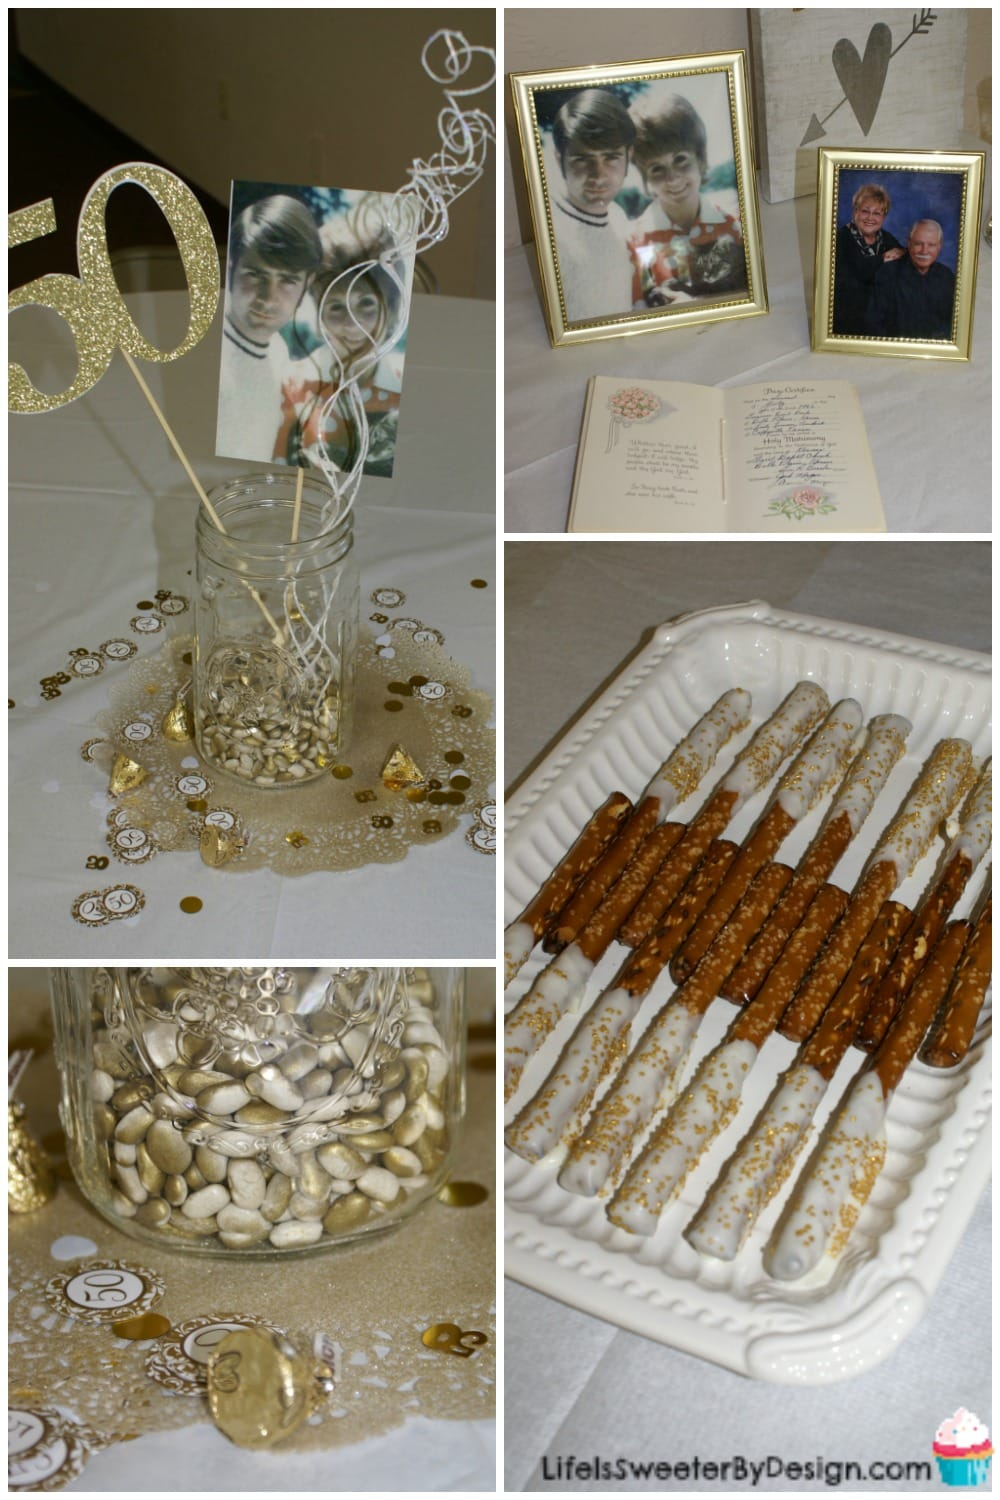 50th anniversary party life is sweeter by design for 50th wedding anniversary decoration ideas